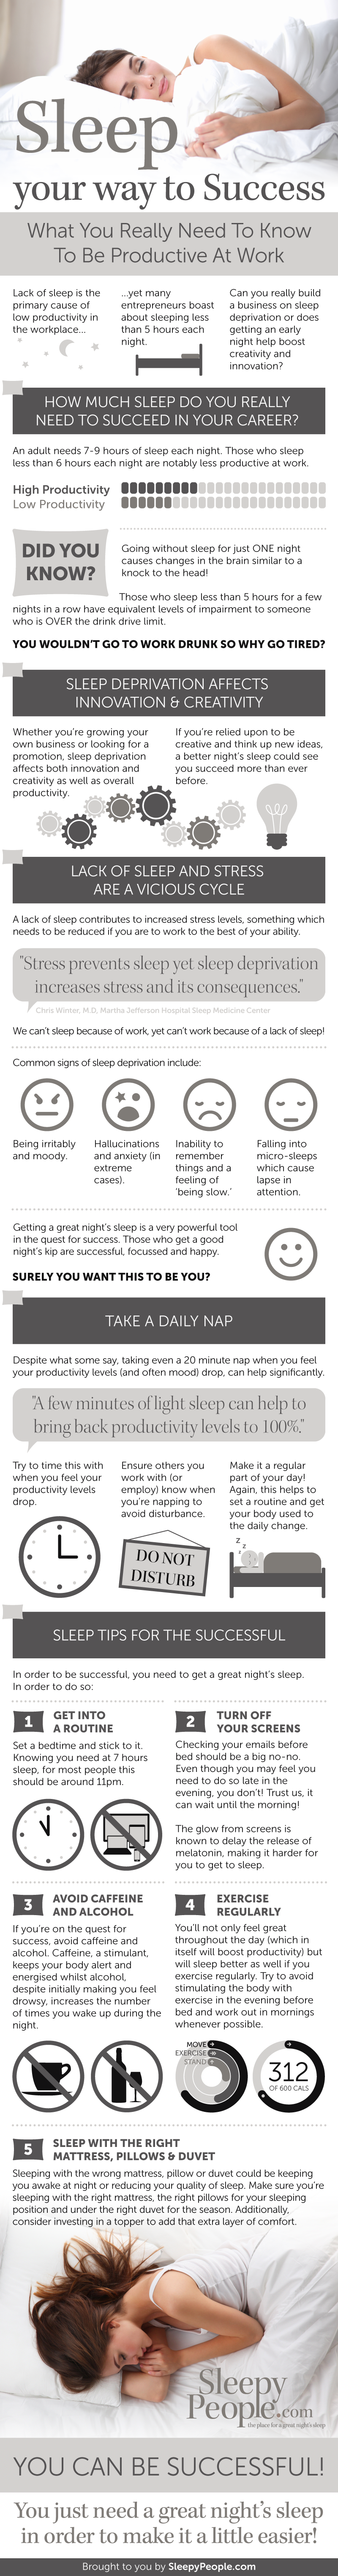 Sleep Your Way To Success #infographic